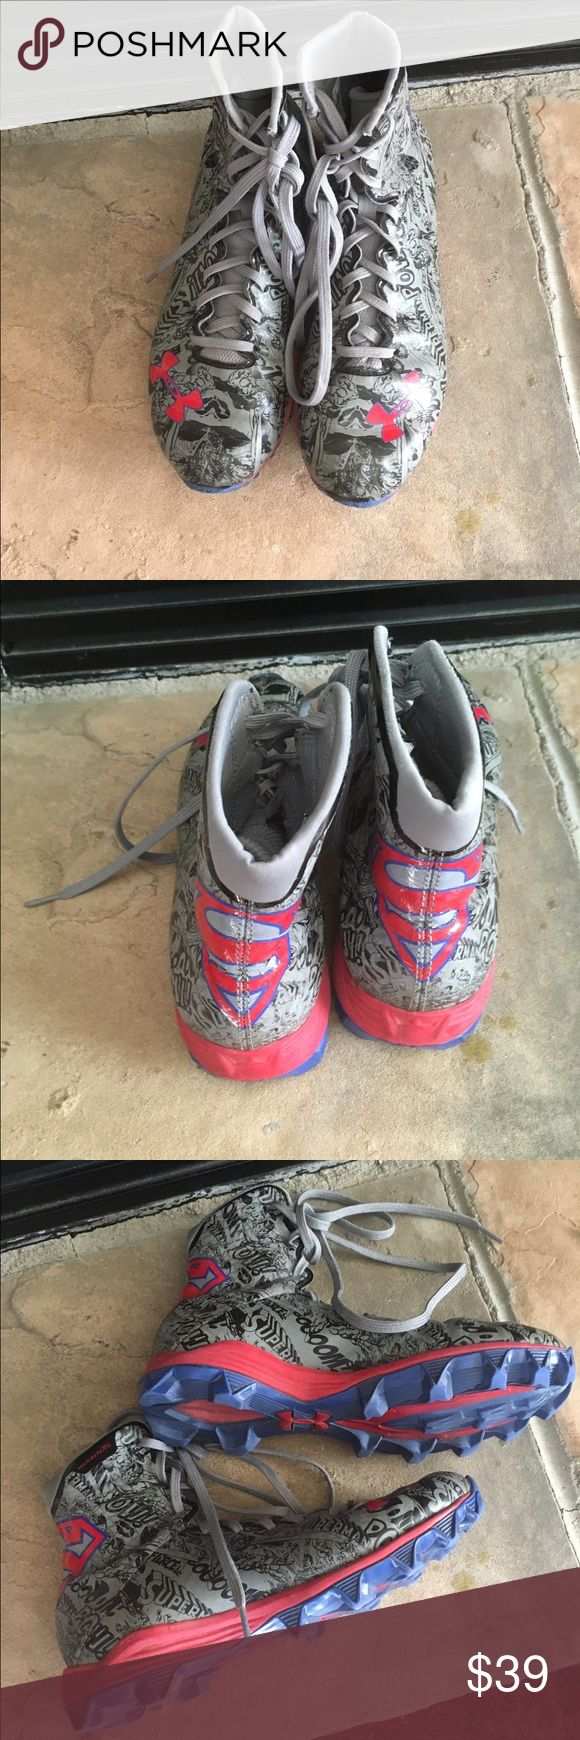 Under Armour Superman cleats Very good condition, very cool Under Armour Shoes